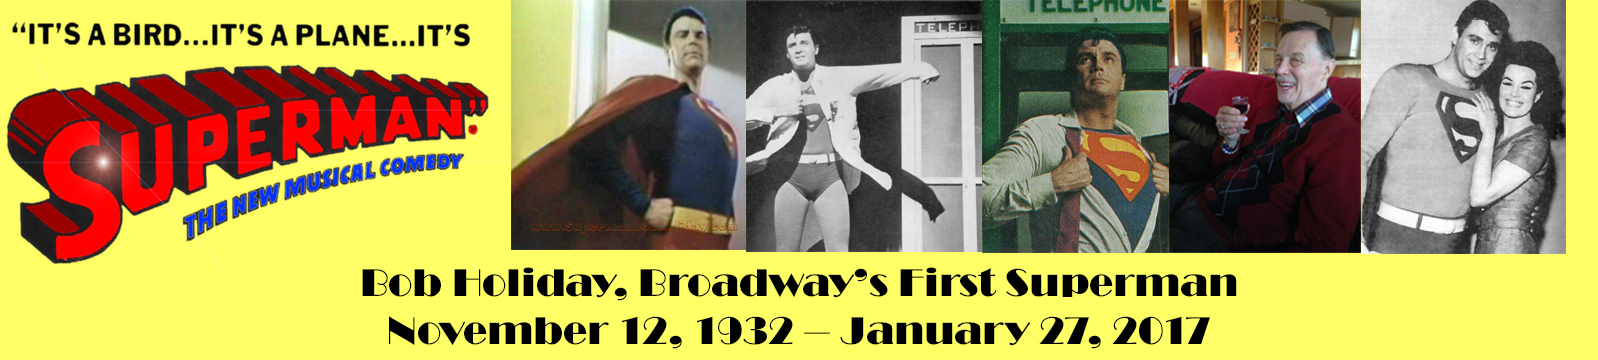 Bob Holiday, Broadway's First Superman